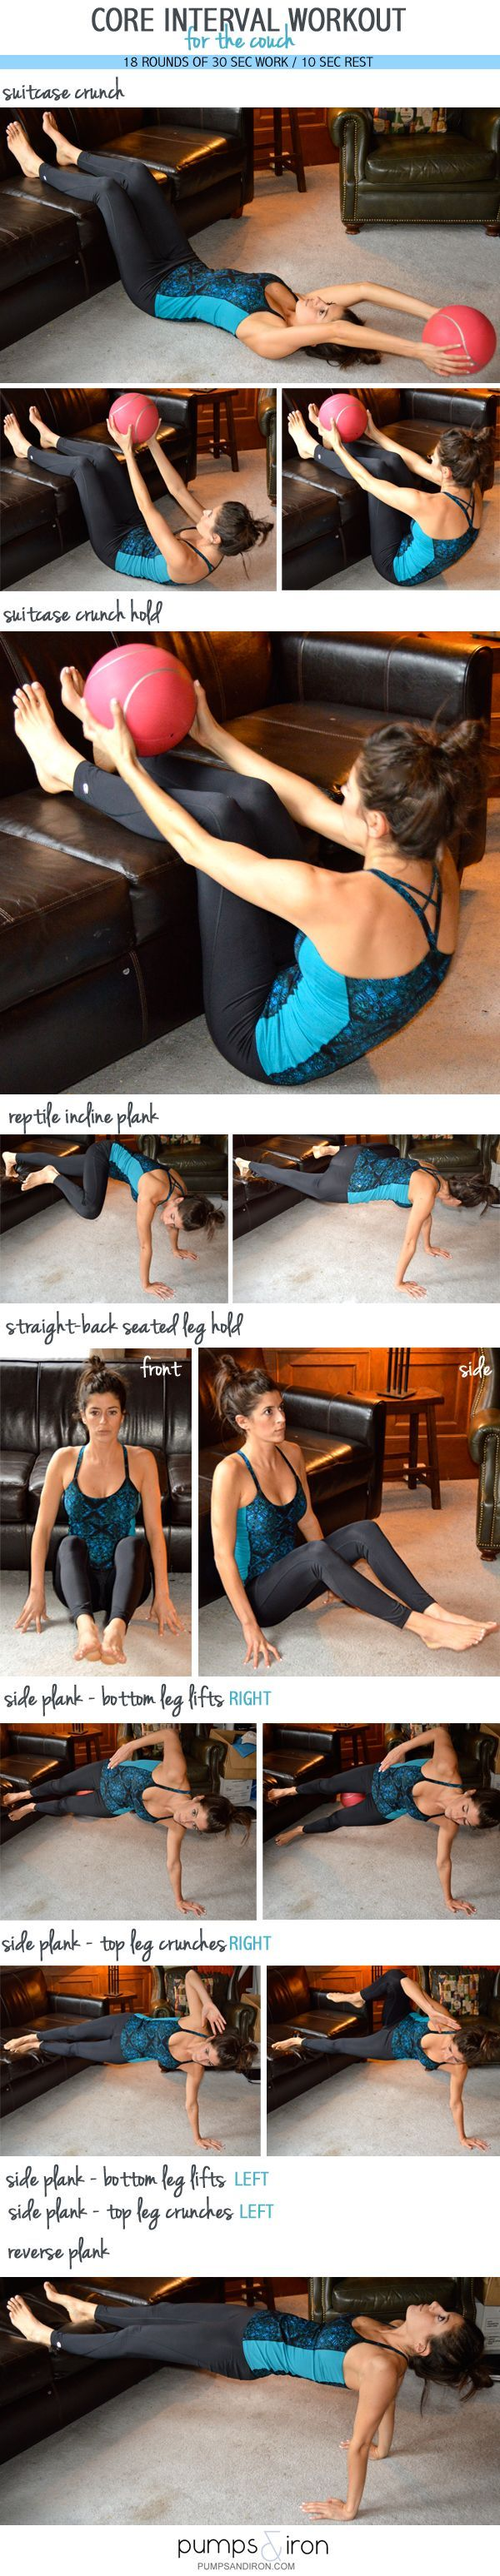 Core Interval Workout for the Couch. No equipment needed...just hard work and consistency. #exercises , #fitness  courageouspaths.com